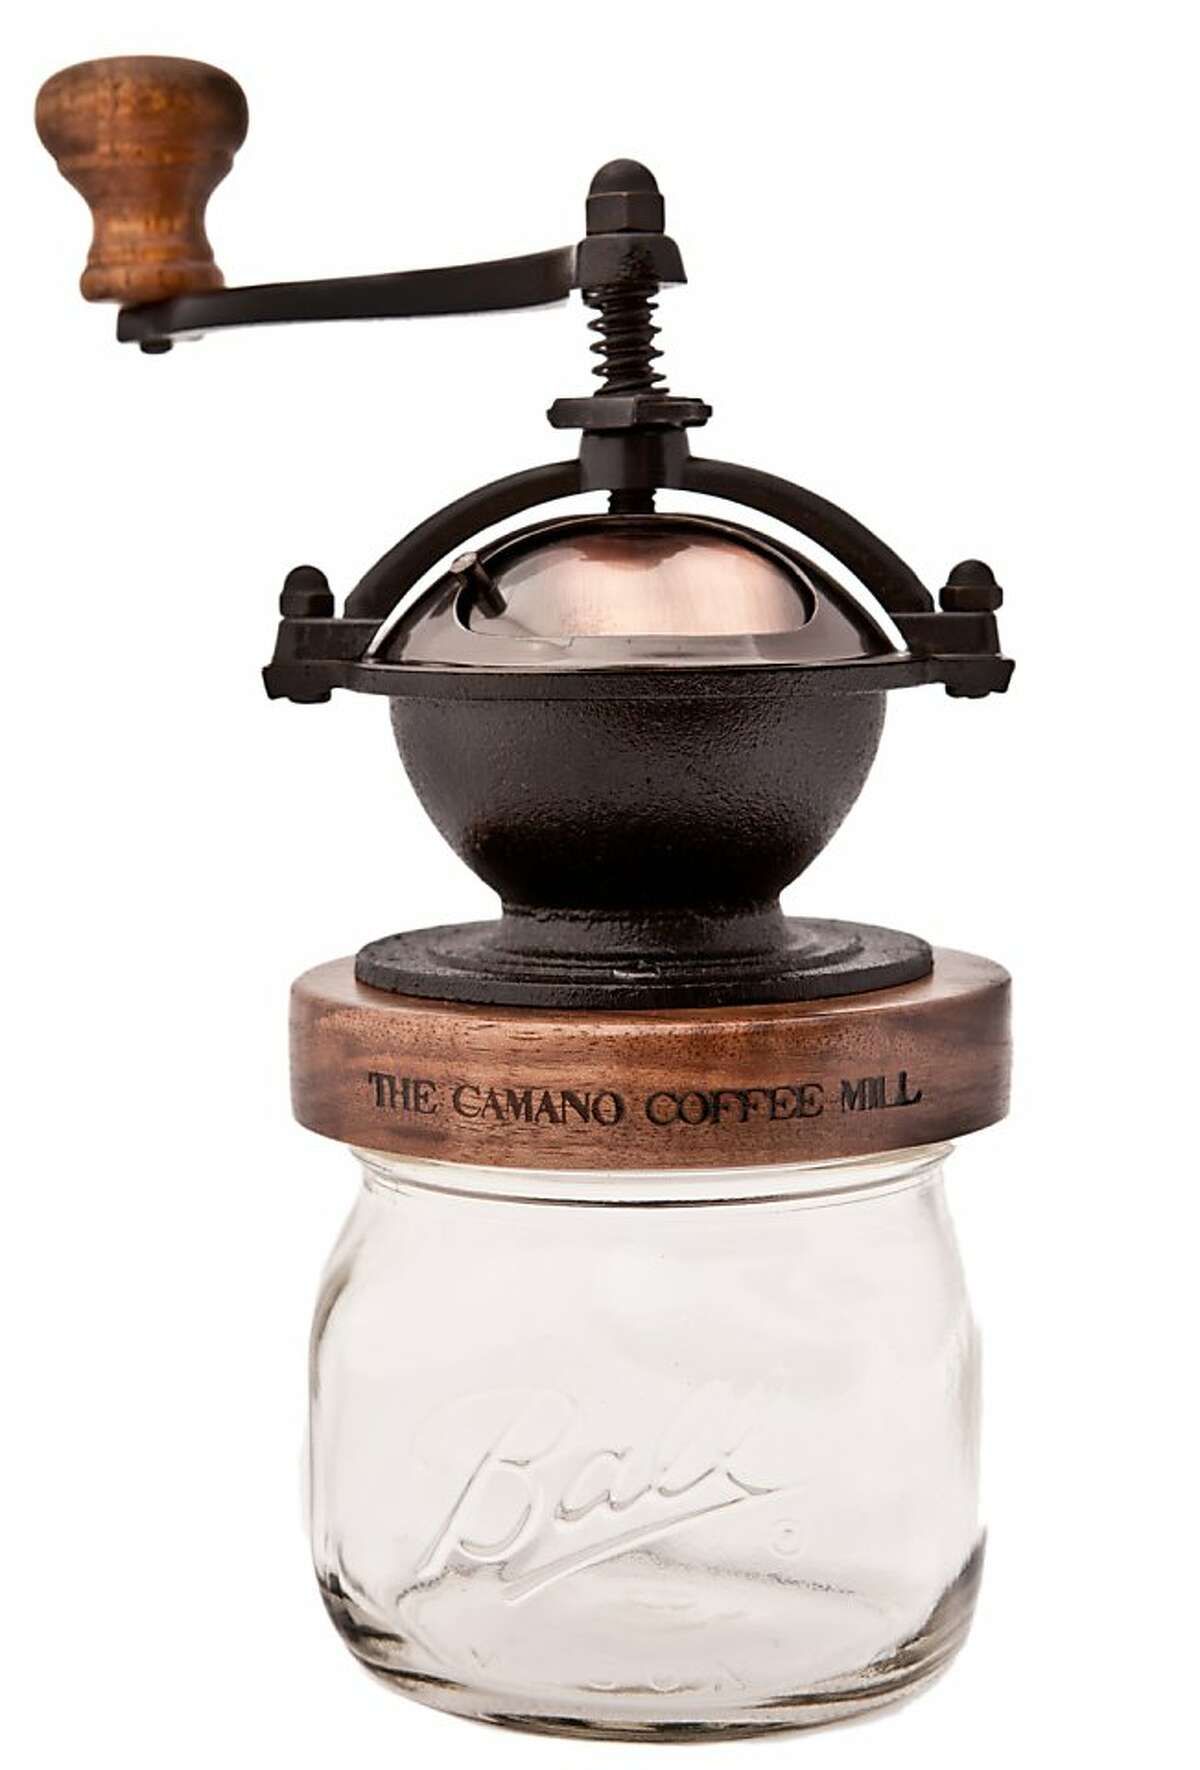 Redrooster's Camano Coffee Mill not only grinds coffee beans in a USA-made conical burr grinder, but also incorporates a mason jar in its design.